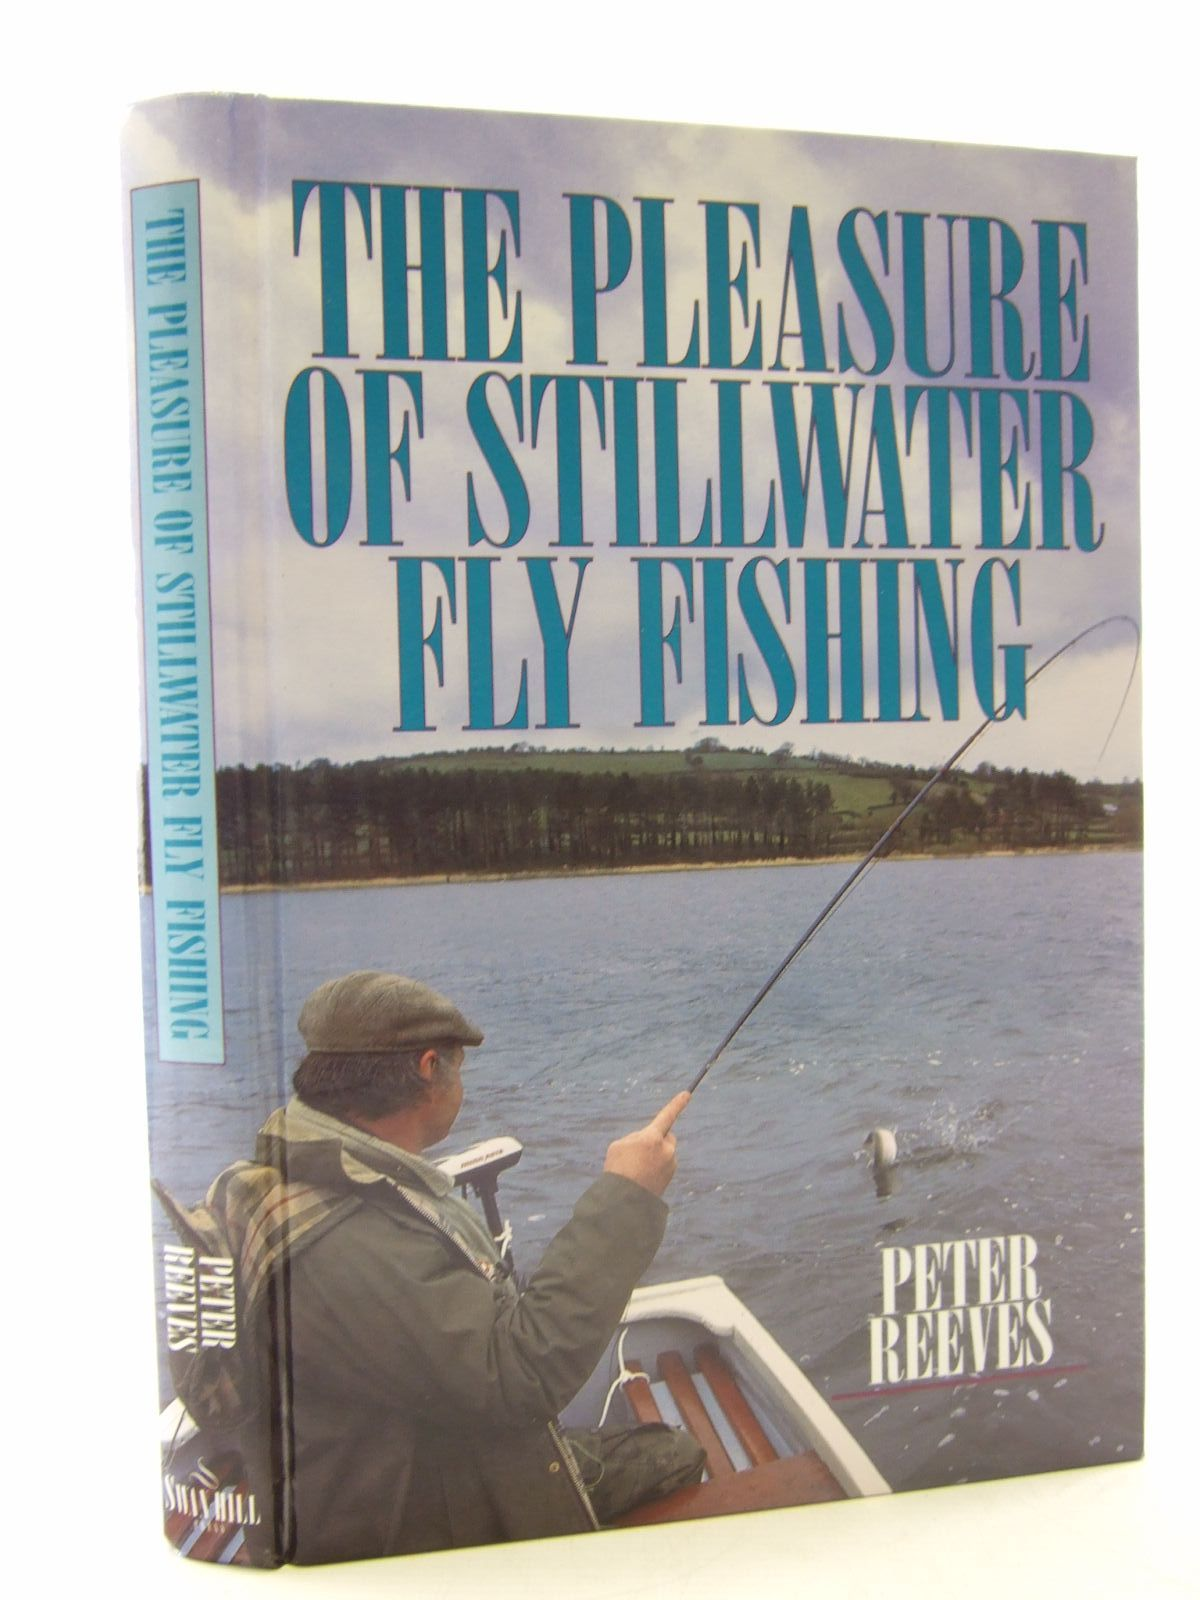 Photo of THE PLEASURE OF STILLWATER FLY FISHING written by Reeves, Peter published by Swan Hill Press (STOCK CODE: 1707283)  for sale by Stella & Rose's Books